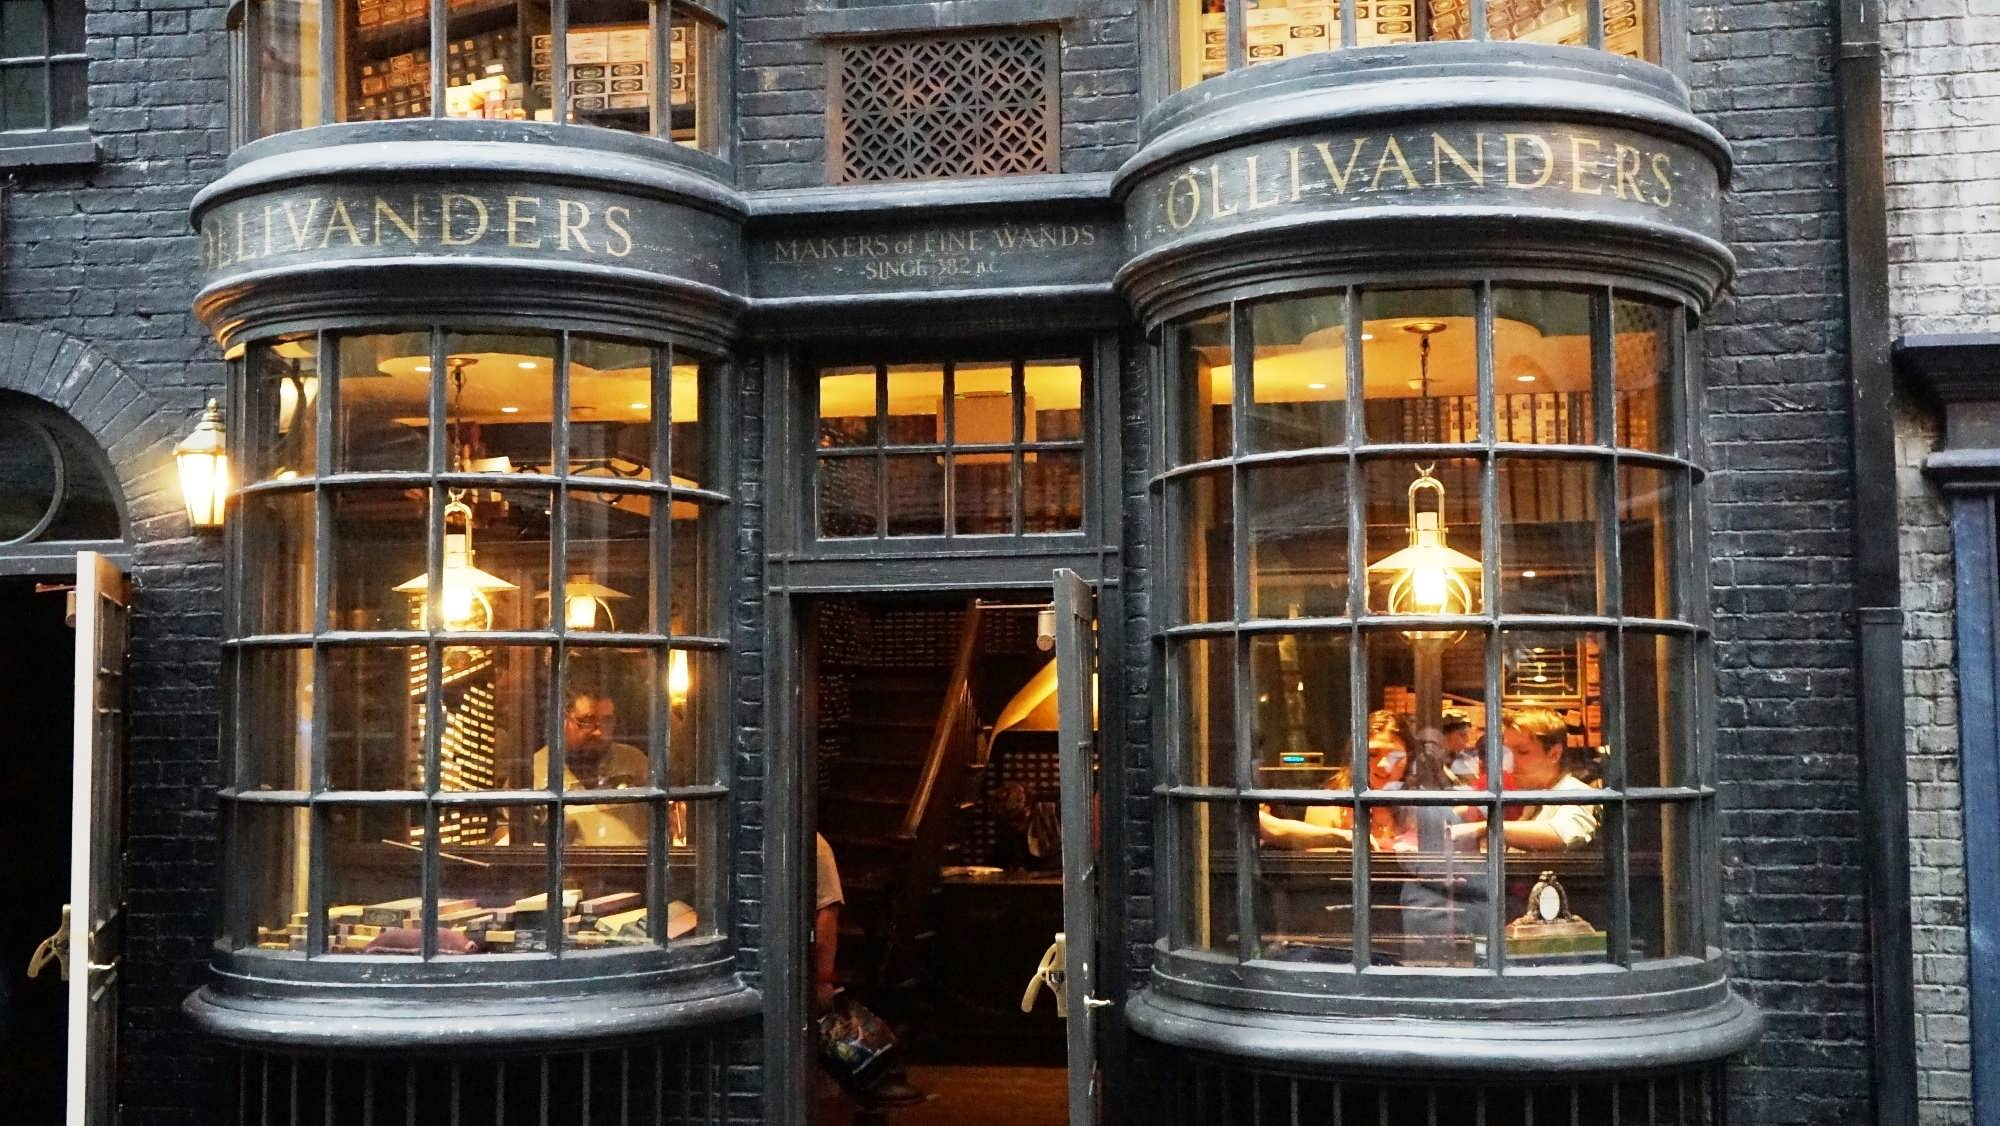 Ollivander's in Diagon Alley